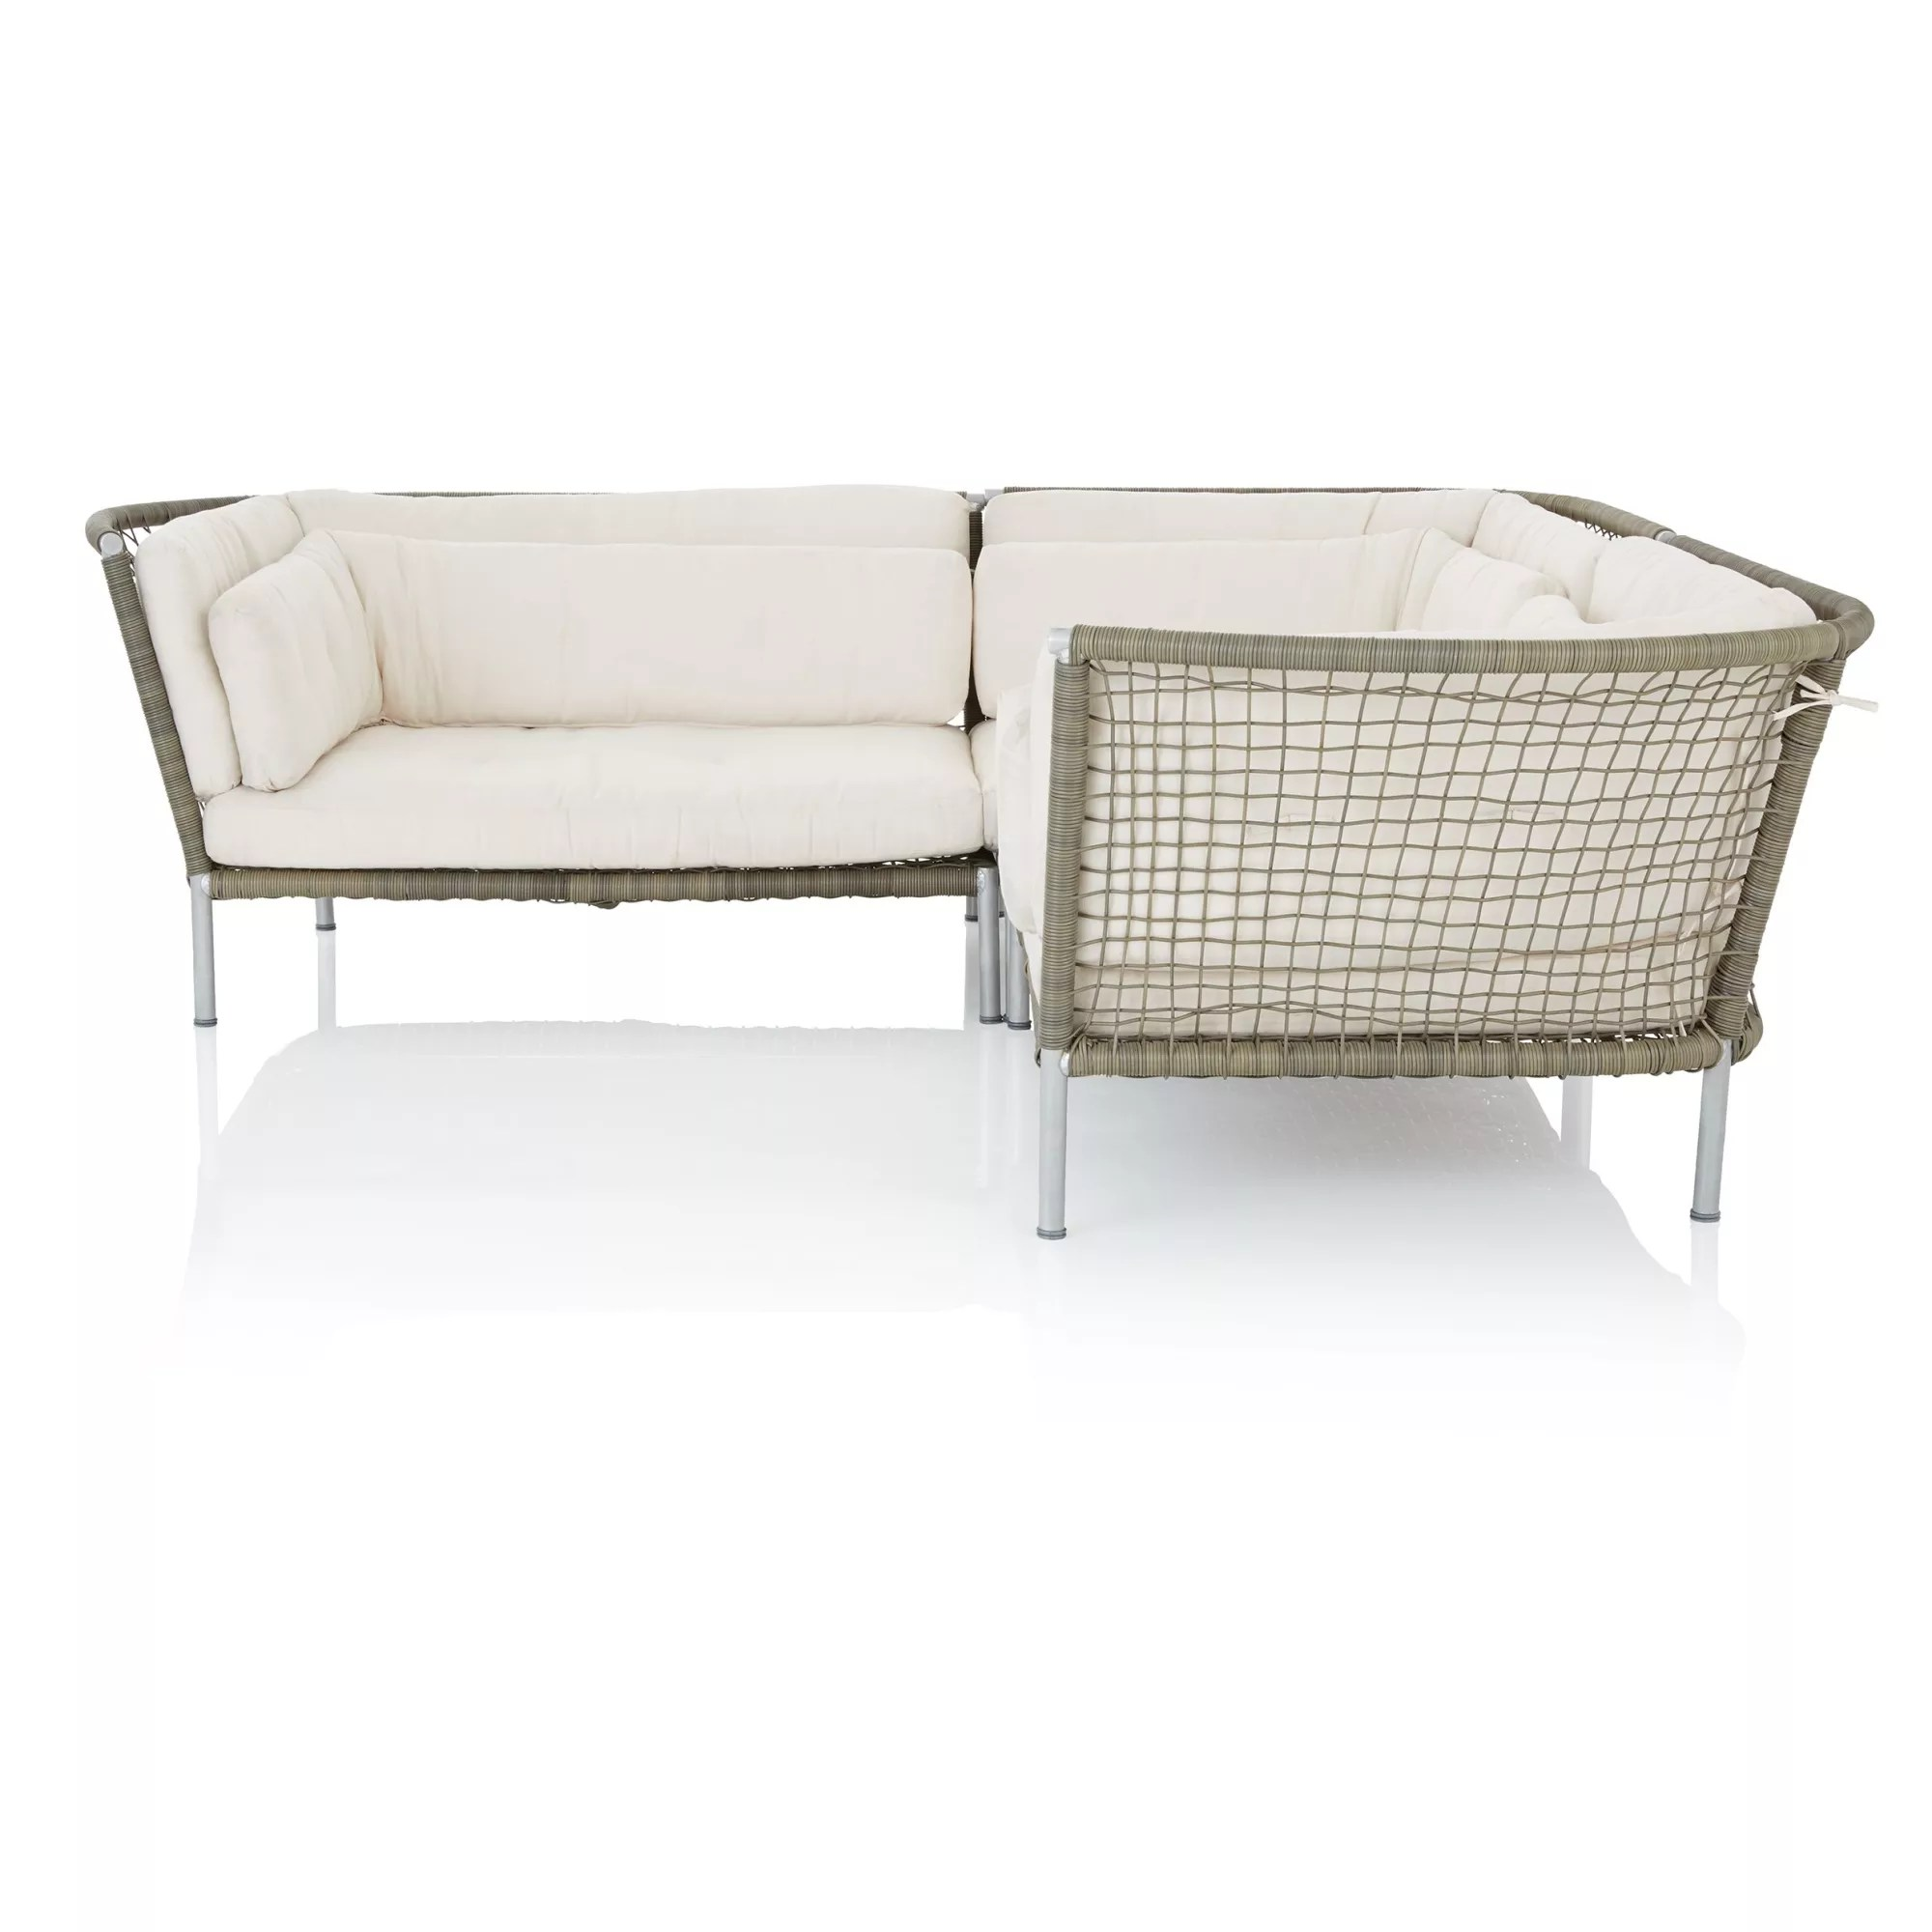 Outdoor Ecksofa Outdoor Ecksofa Erica Bb Italia Sofa Outdoor With Outdoor